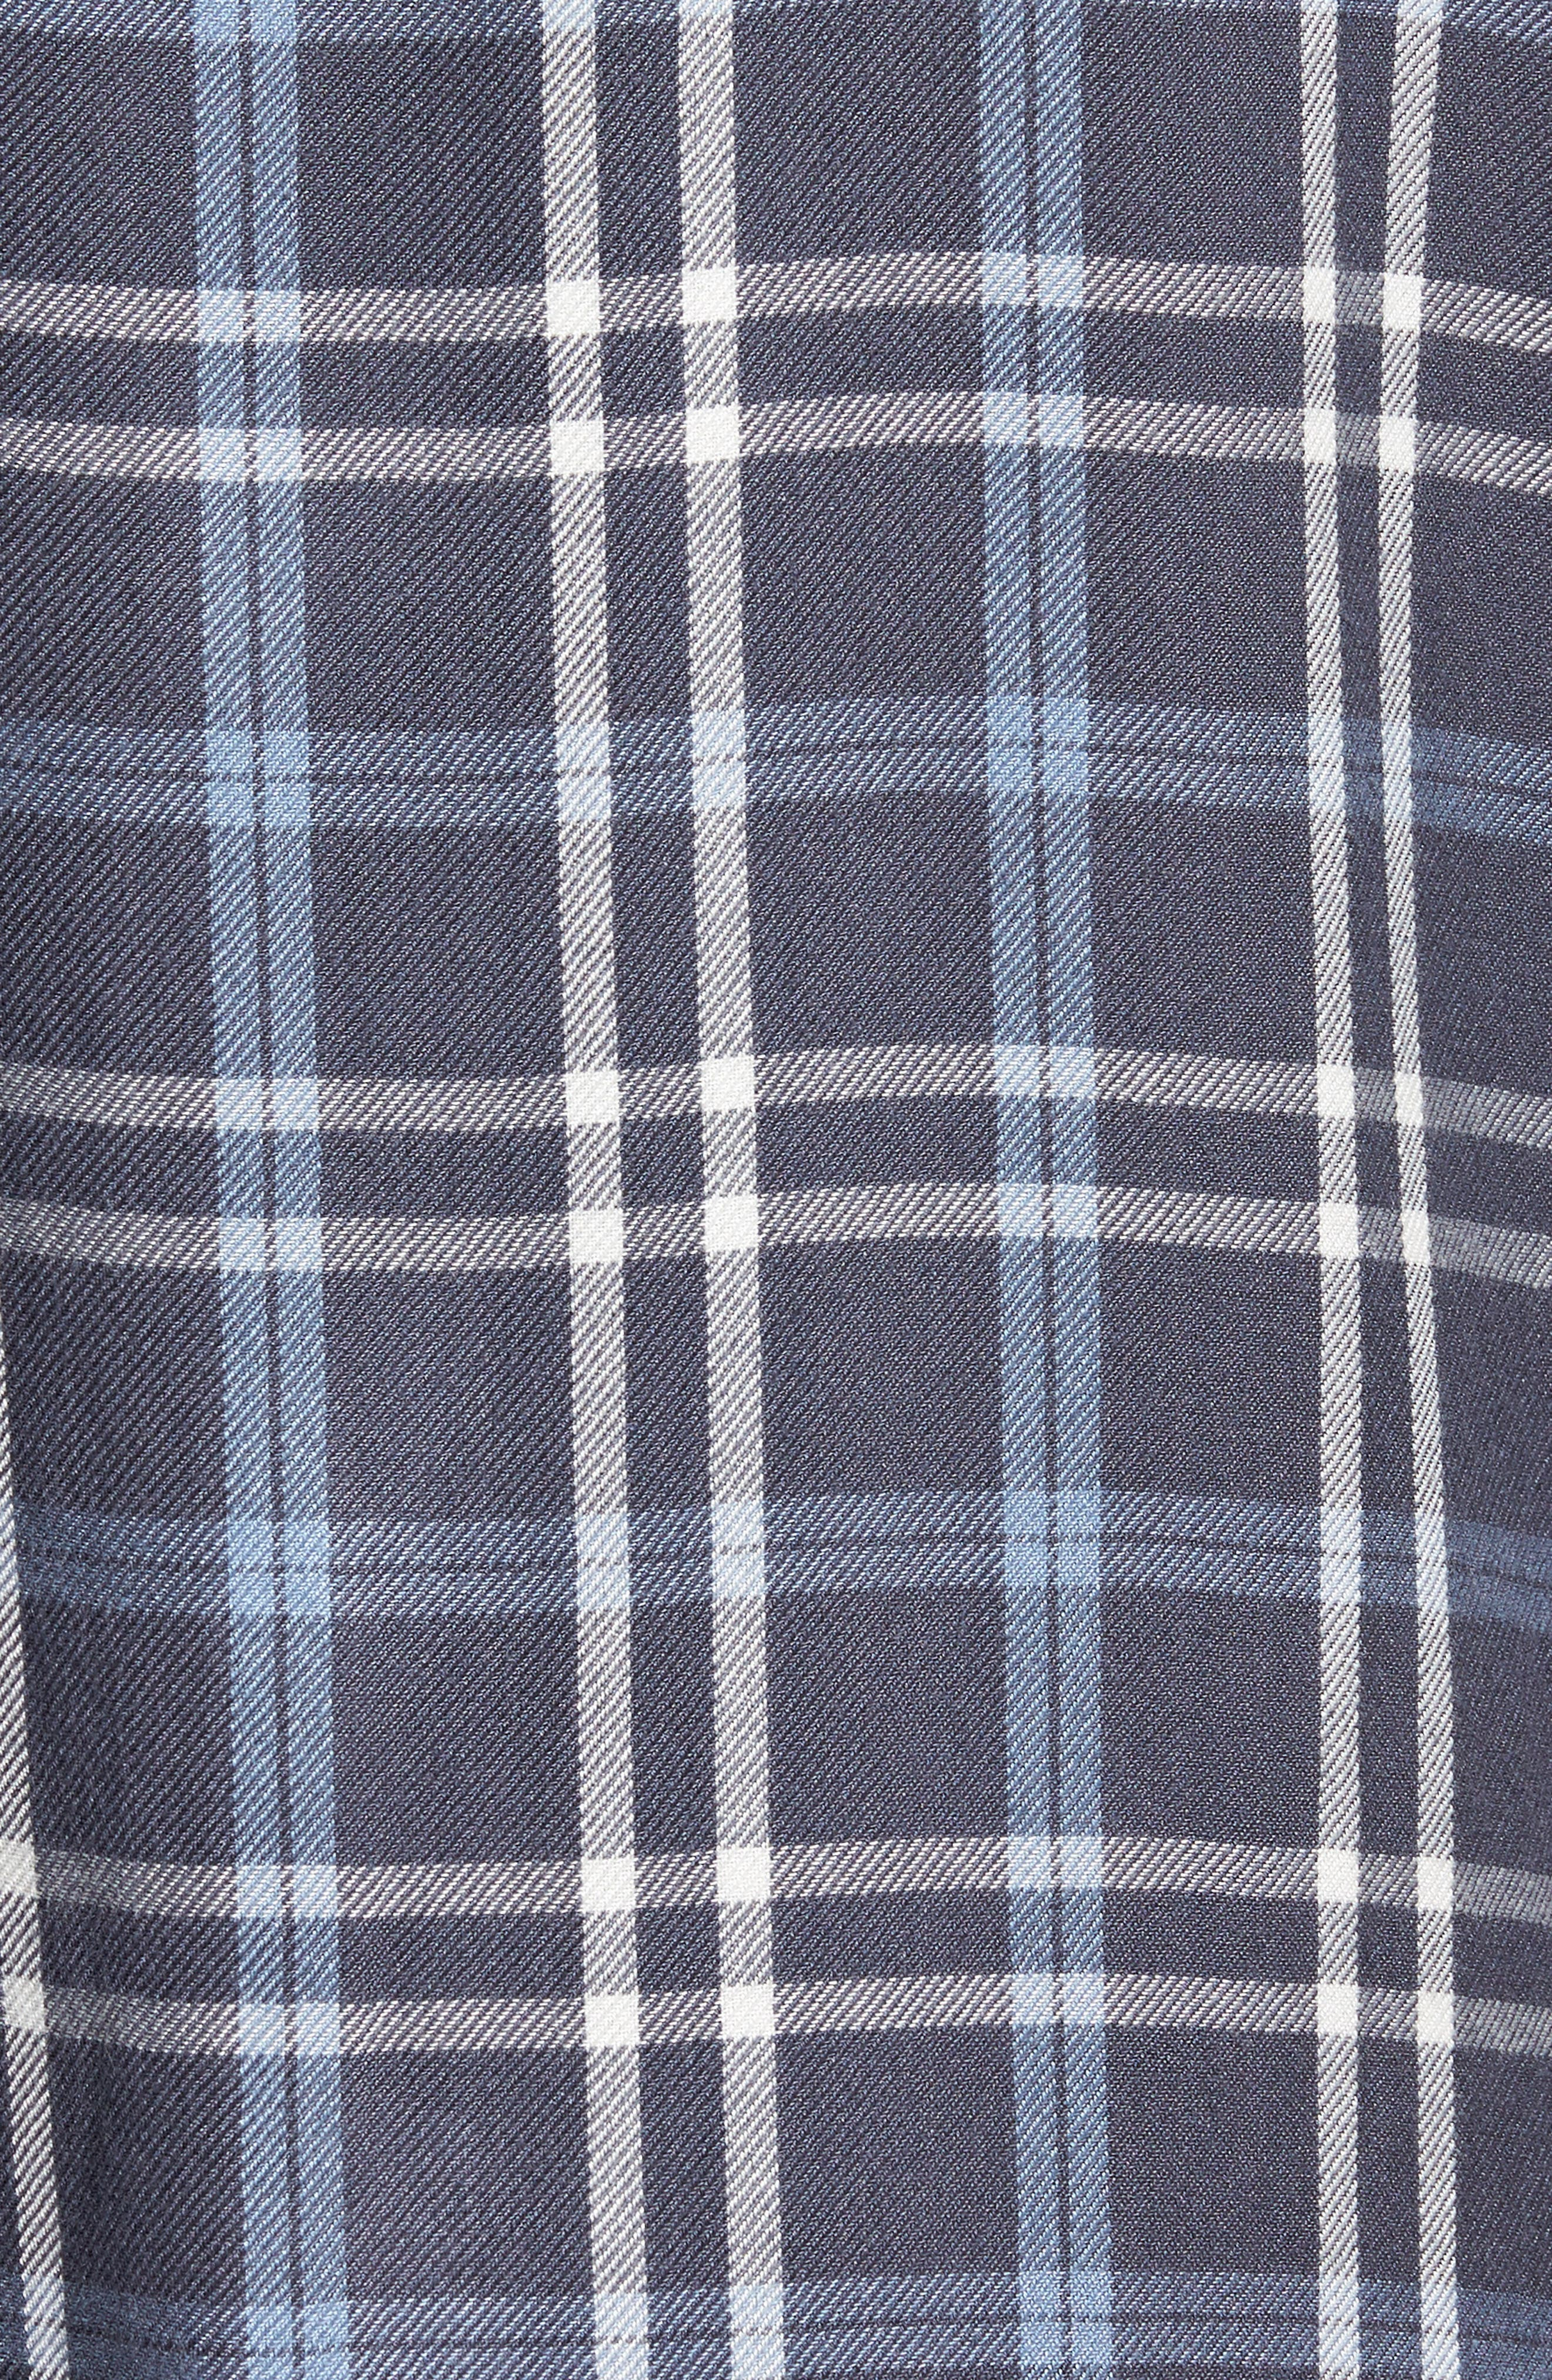 Yarn Dyed Plaid Shirt,                             Alternate thumbnail 10, color,